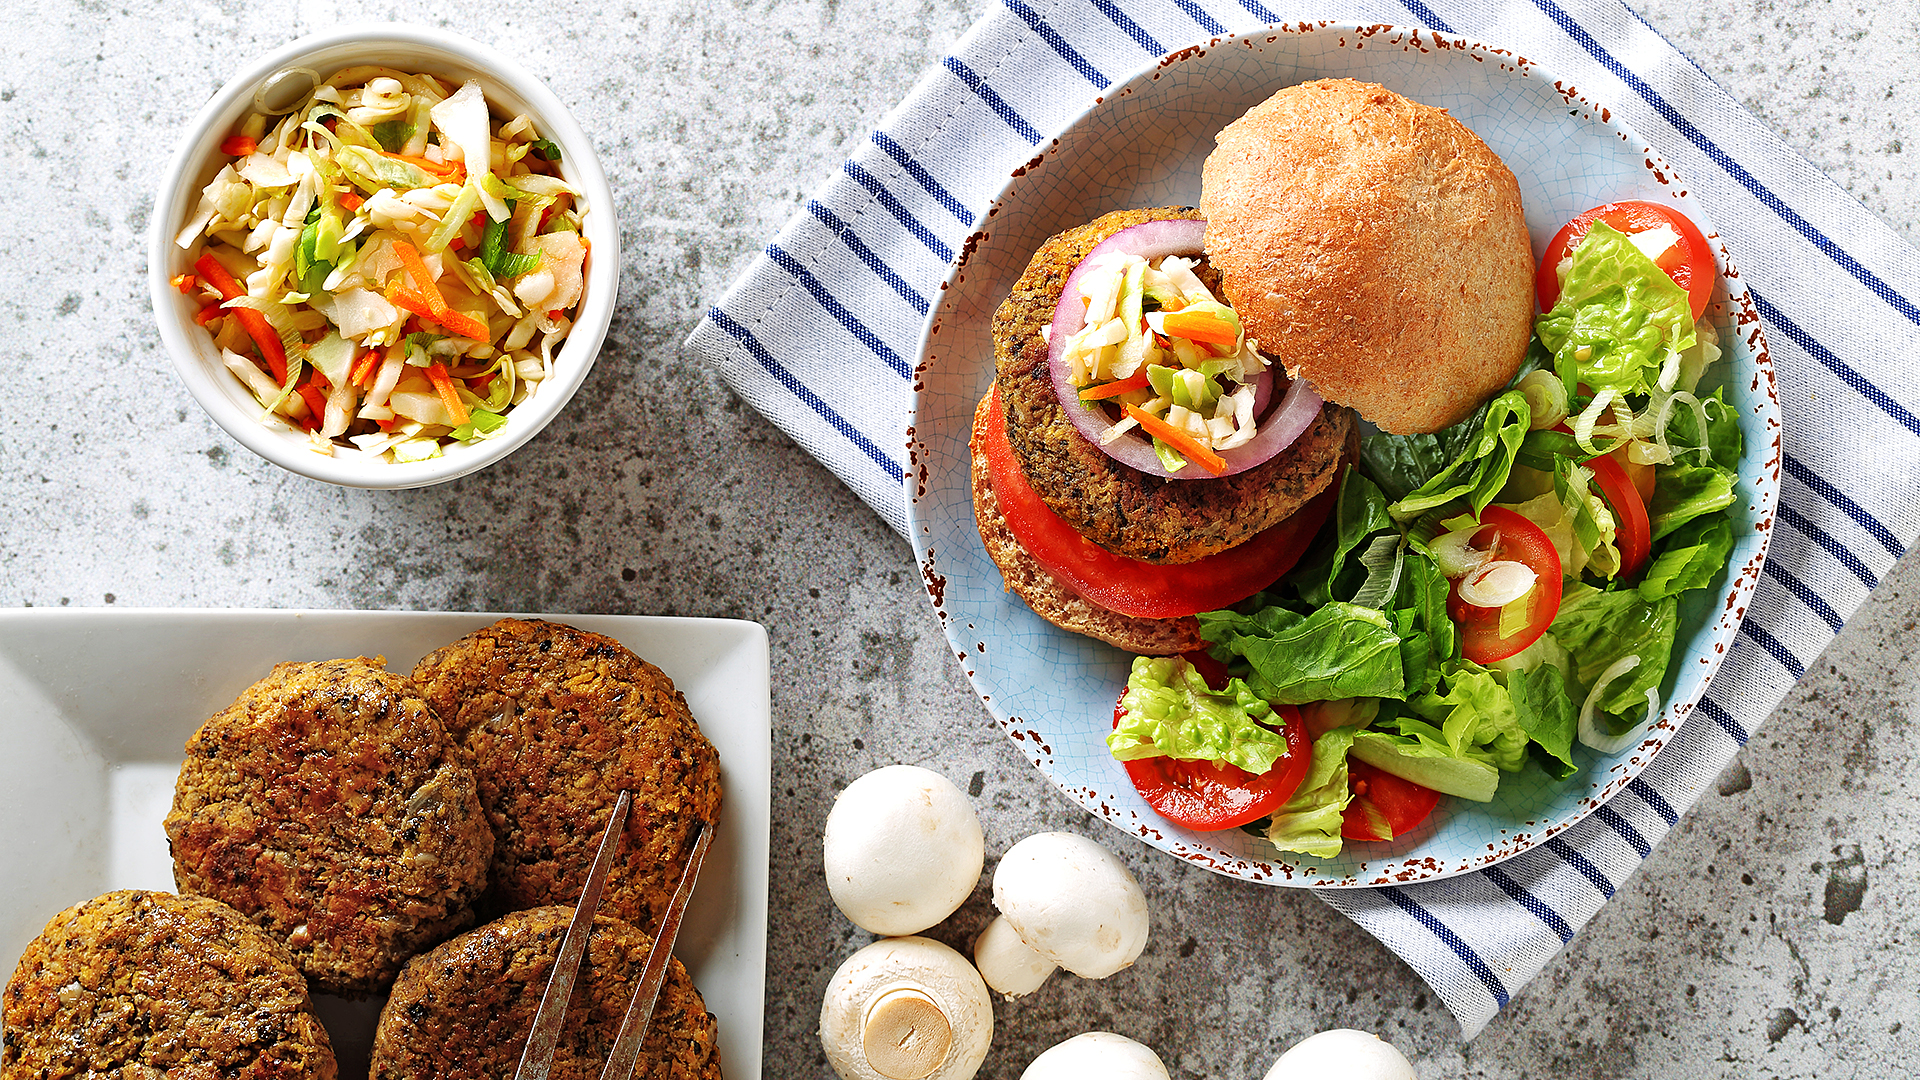 Mushroom squash burgers on a plate with a bun, salad, tomatoes and whole mushrooms on the side.